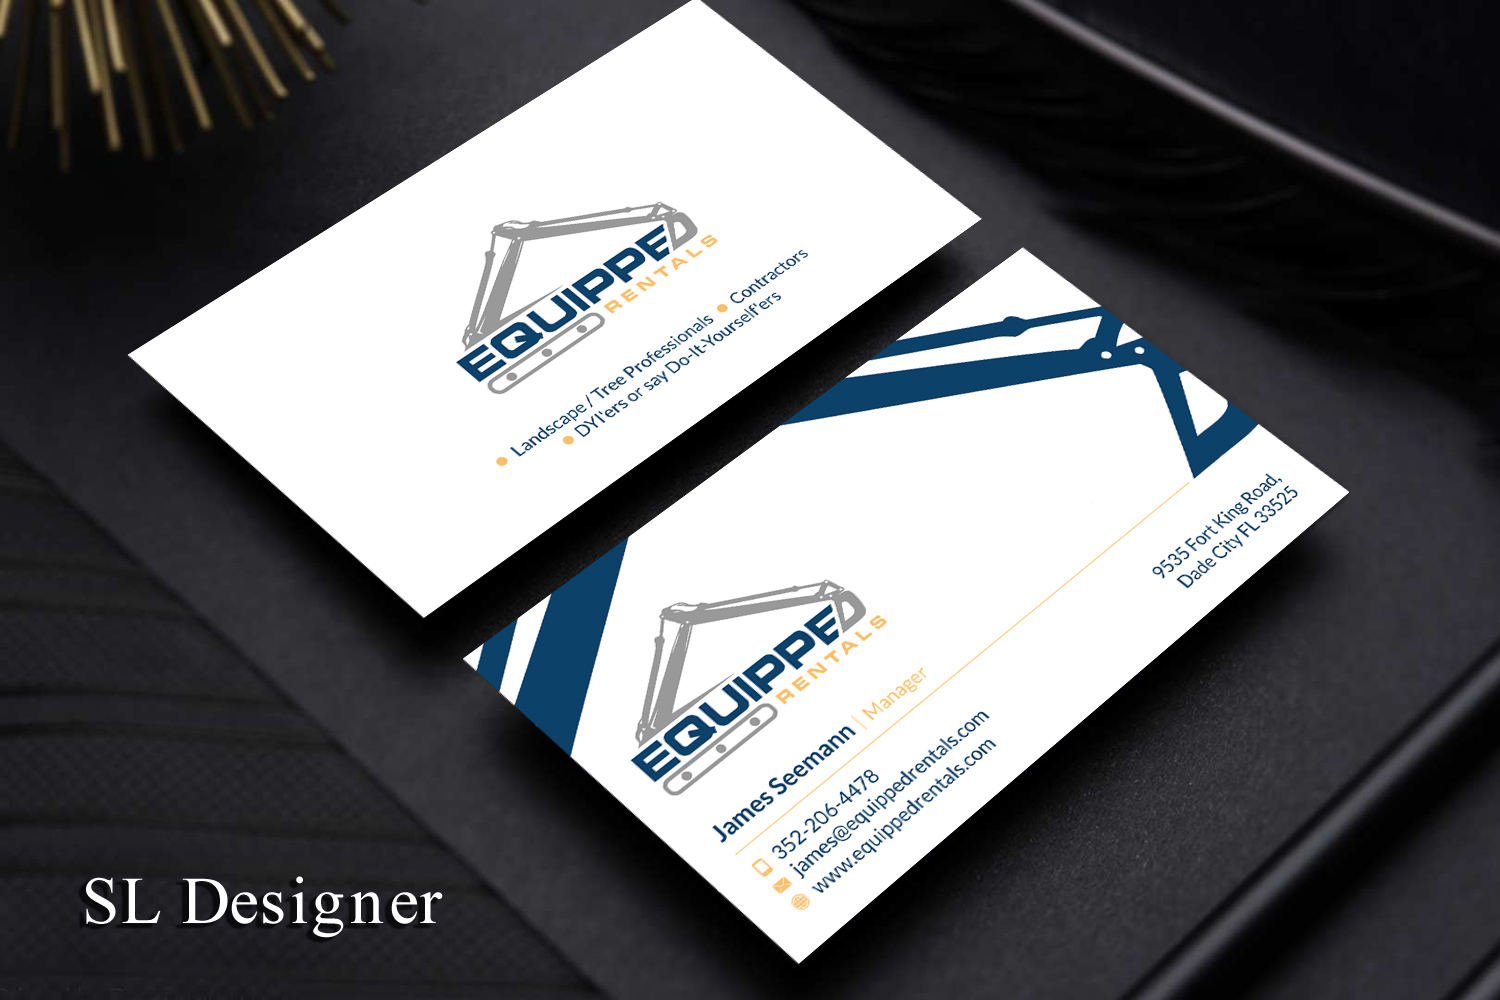 Serious modern business business card design for a company by sl business card design by sl designer for this project design 17809378 solutioingenieria Gallery